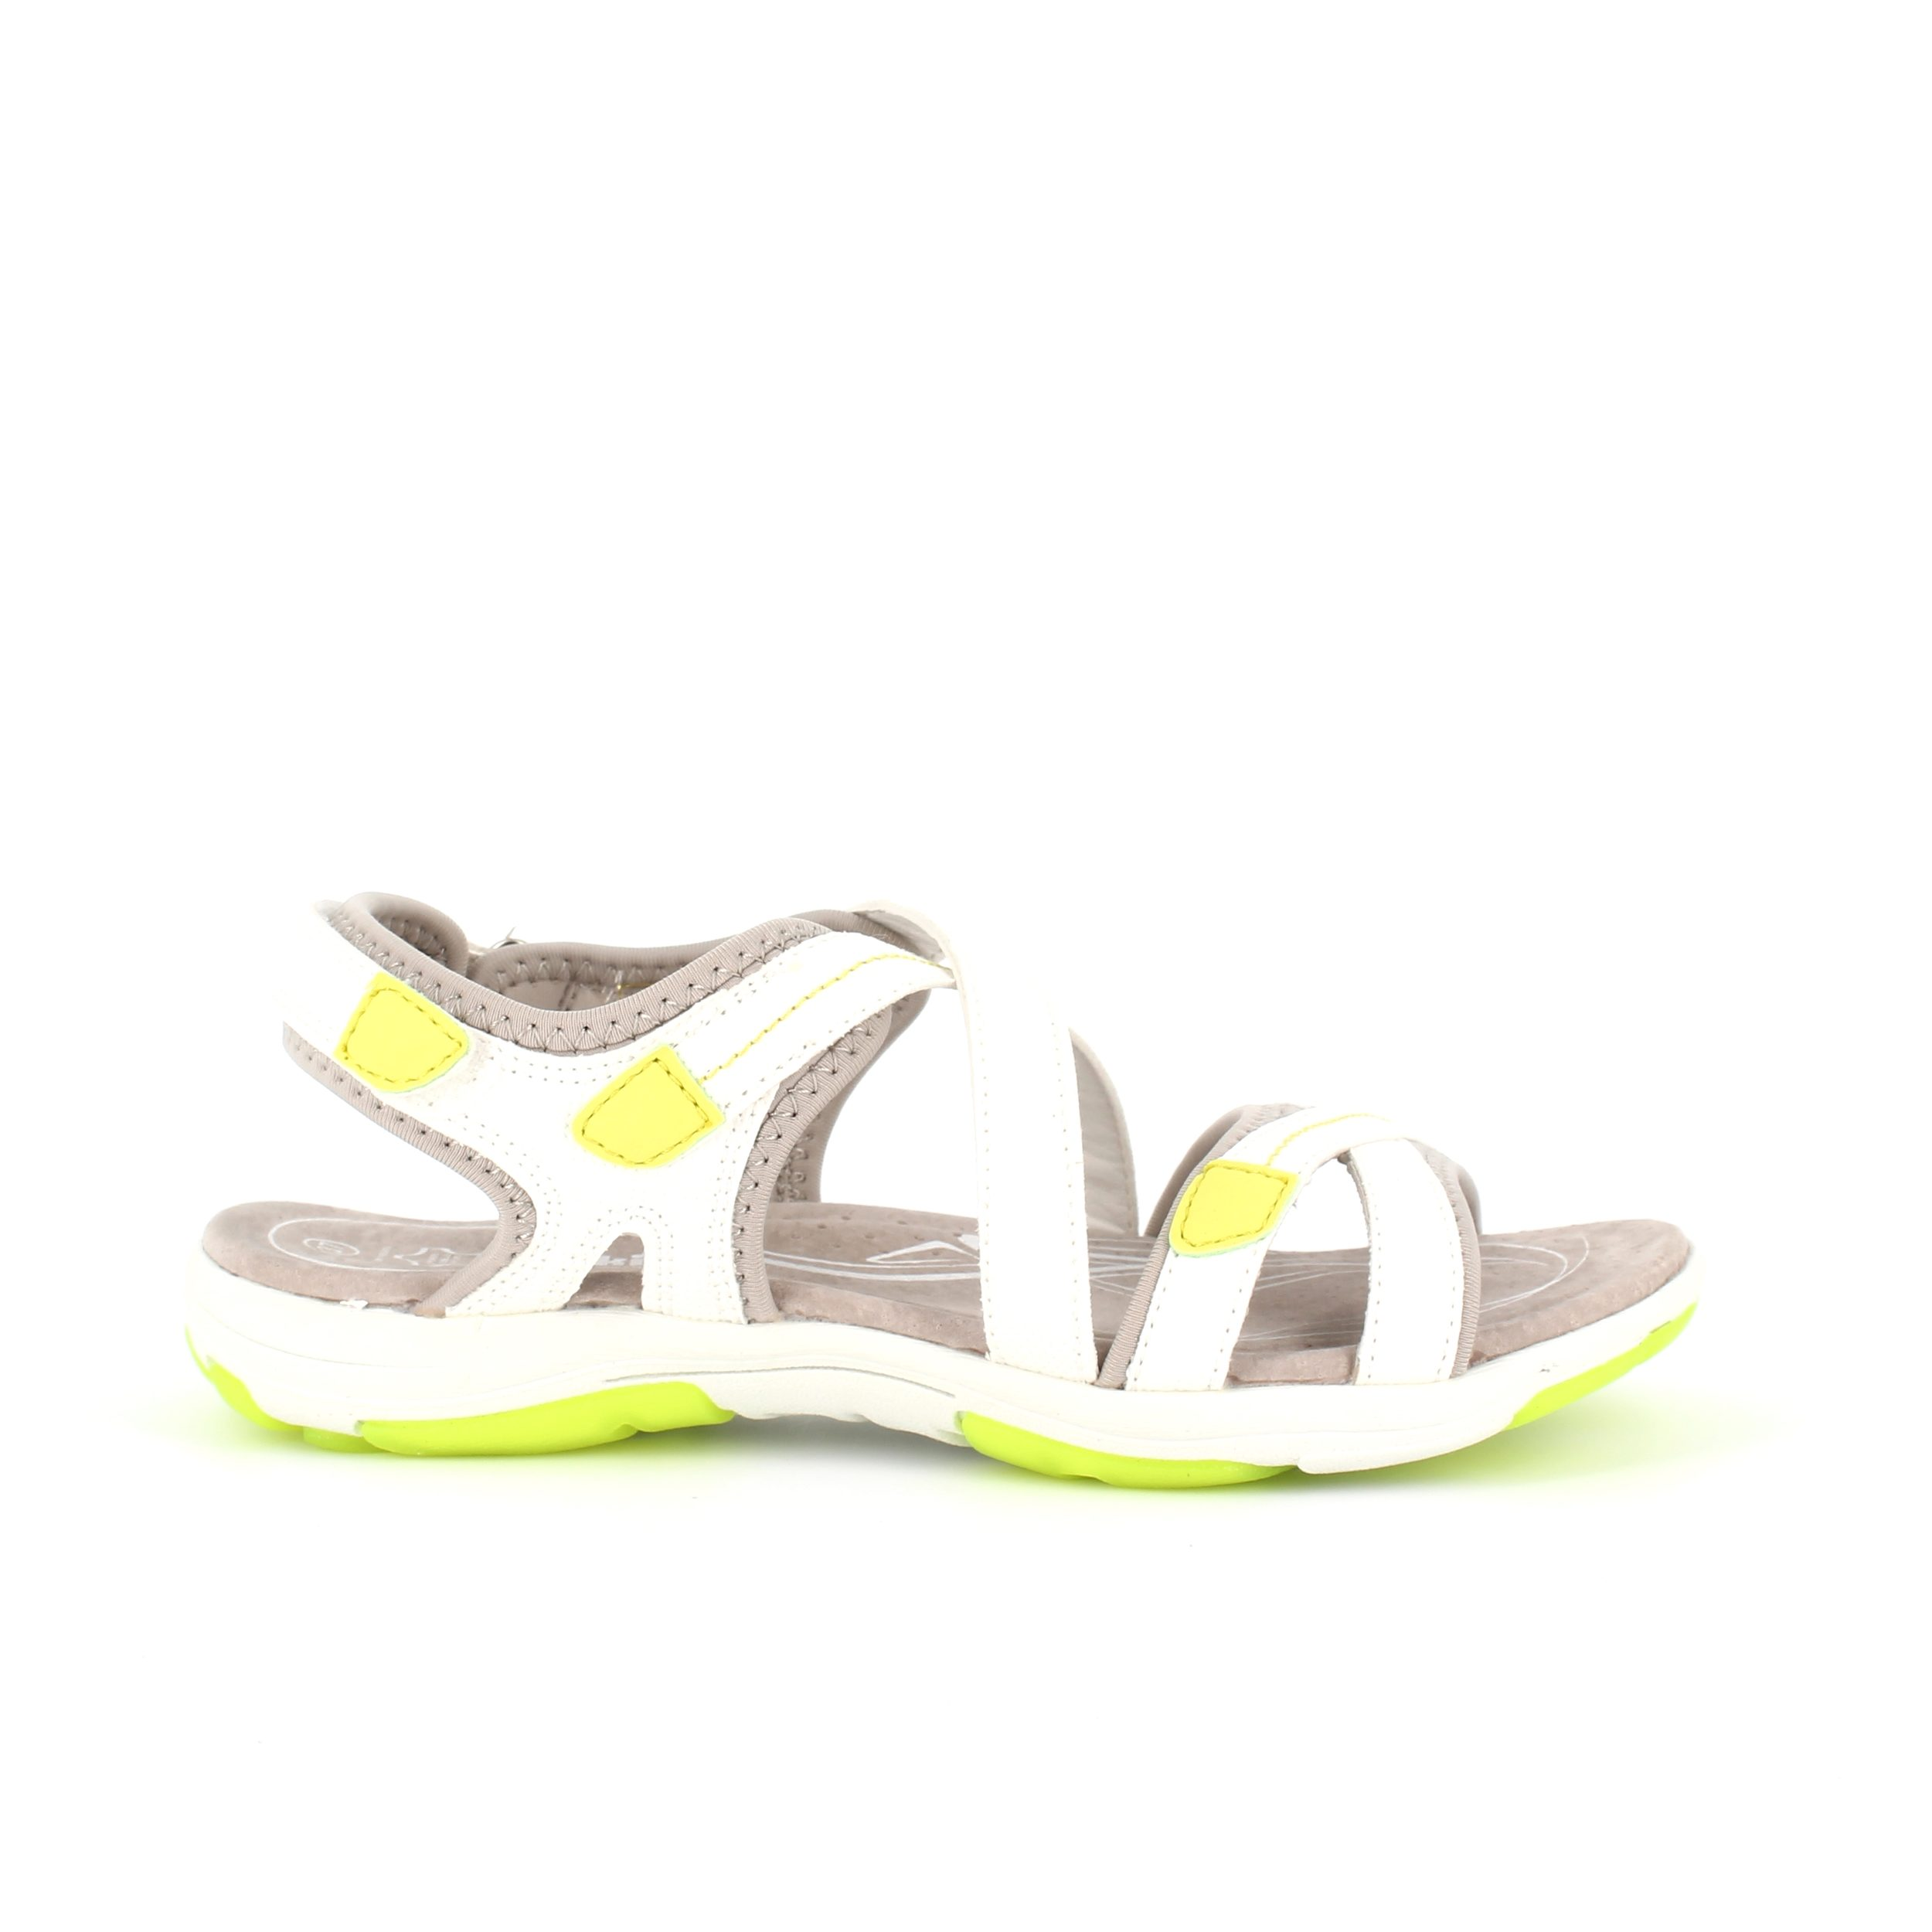 Image of   Smart sandal i frisk hvid og lime - 42